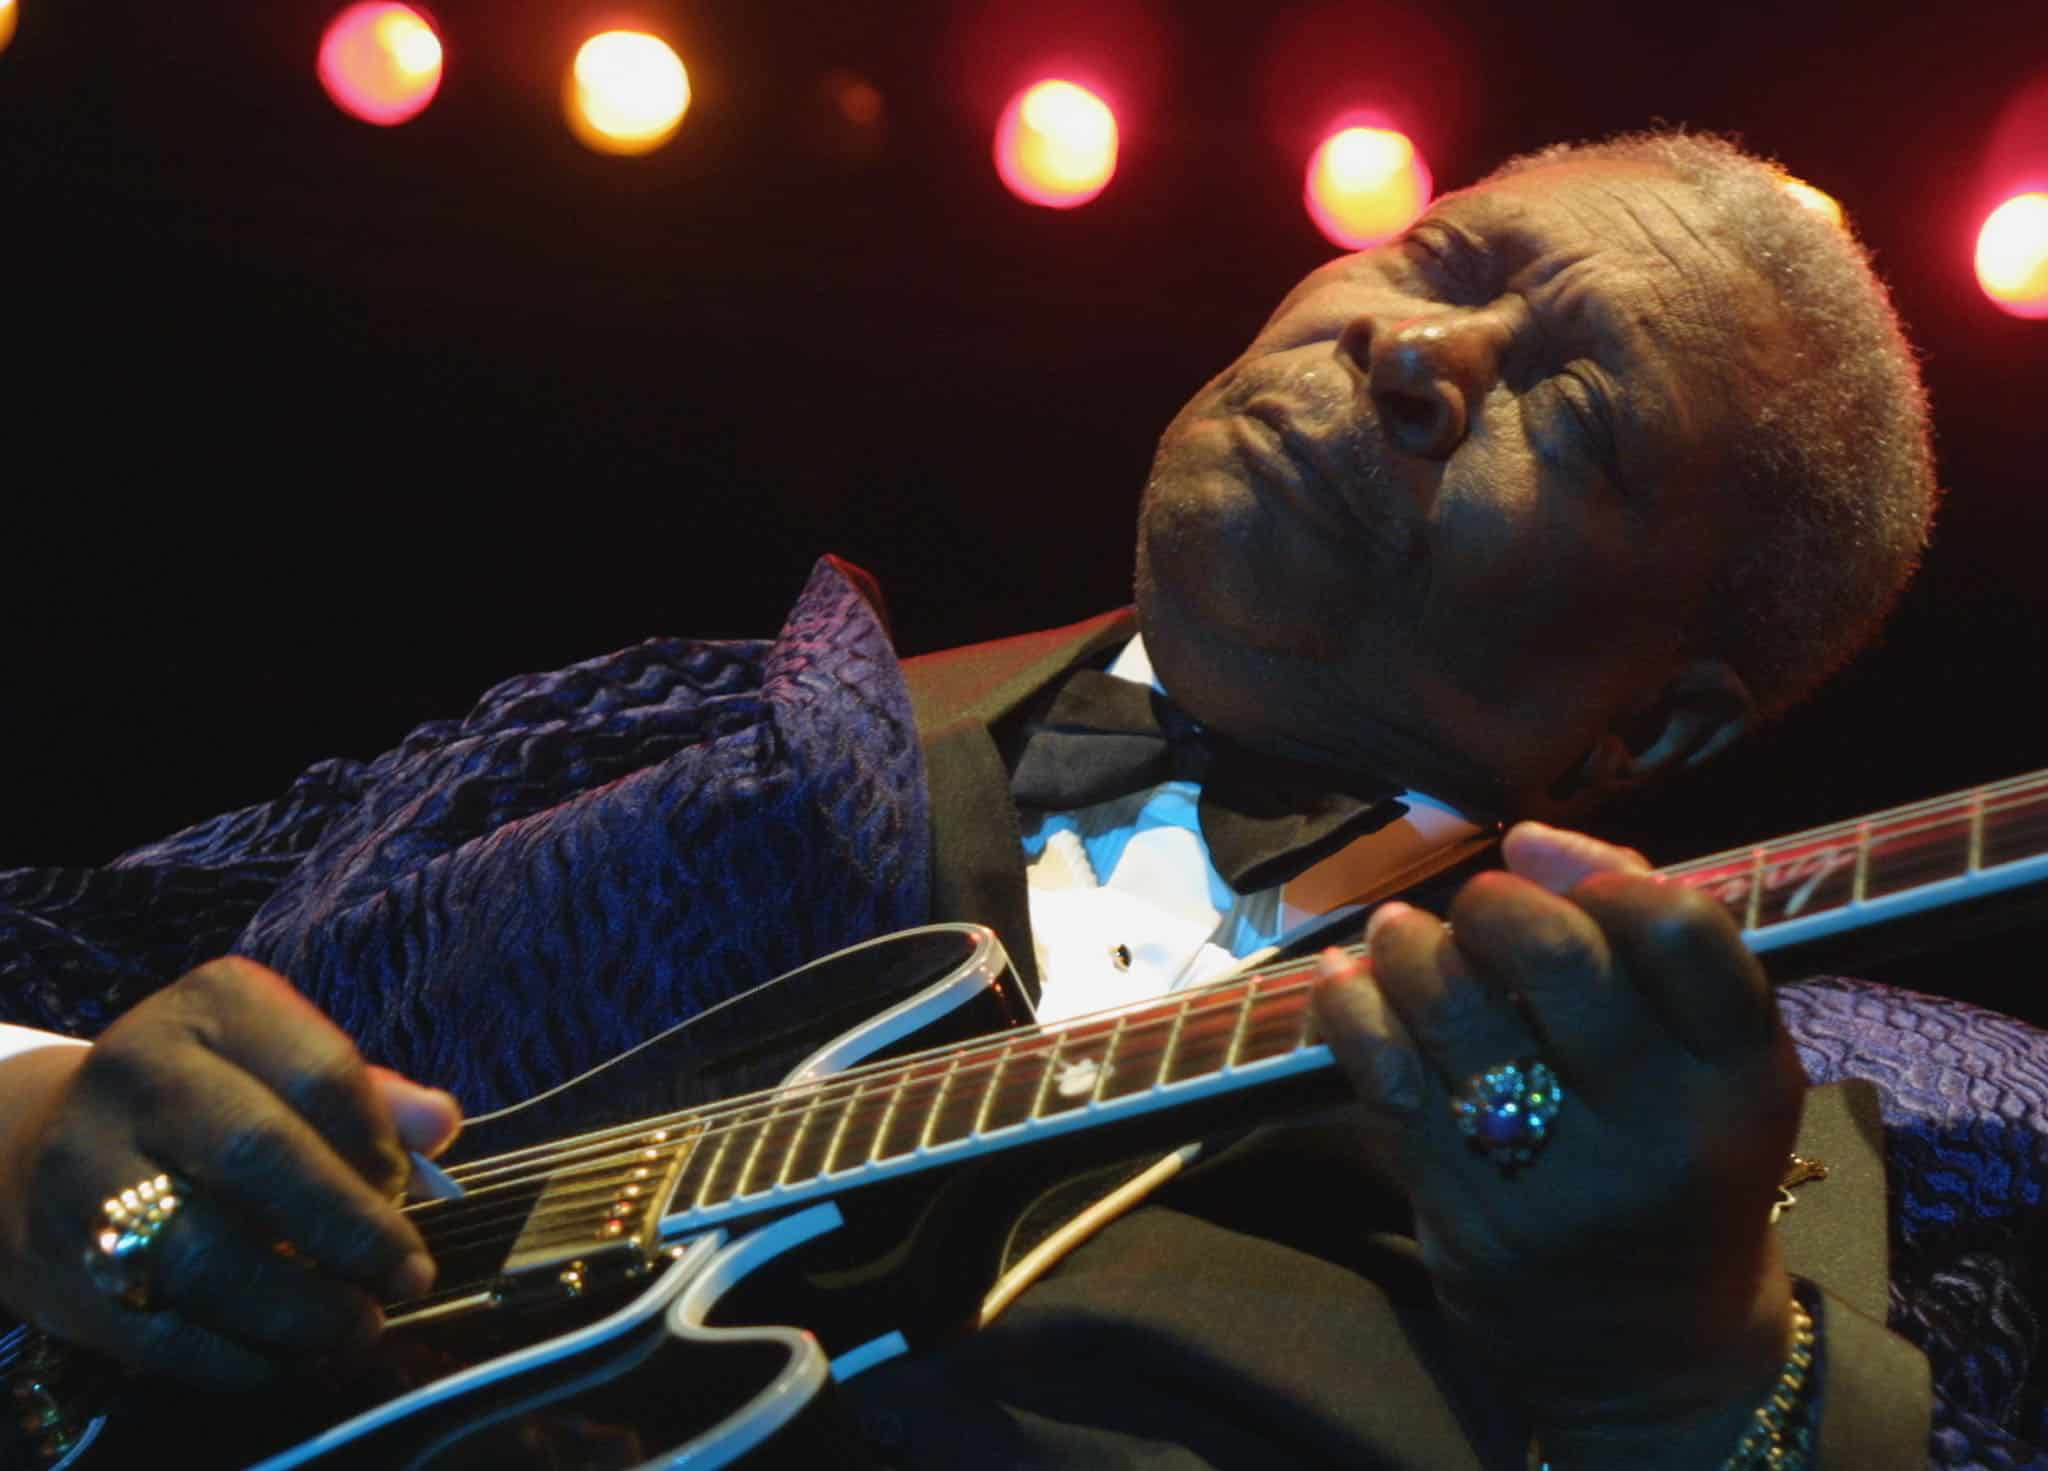 Blues legend B.B. King performing in Nice, southern France during the 8th Nice Jazz festival on July 25, 2001.